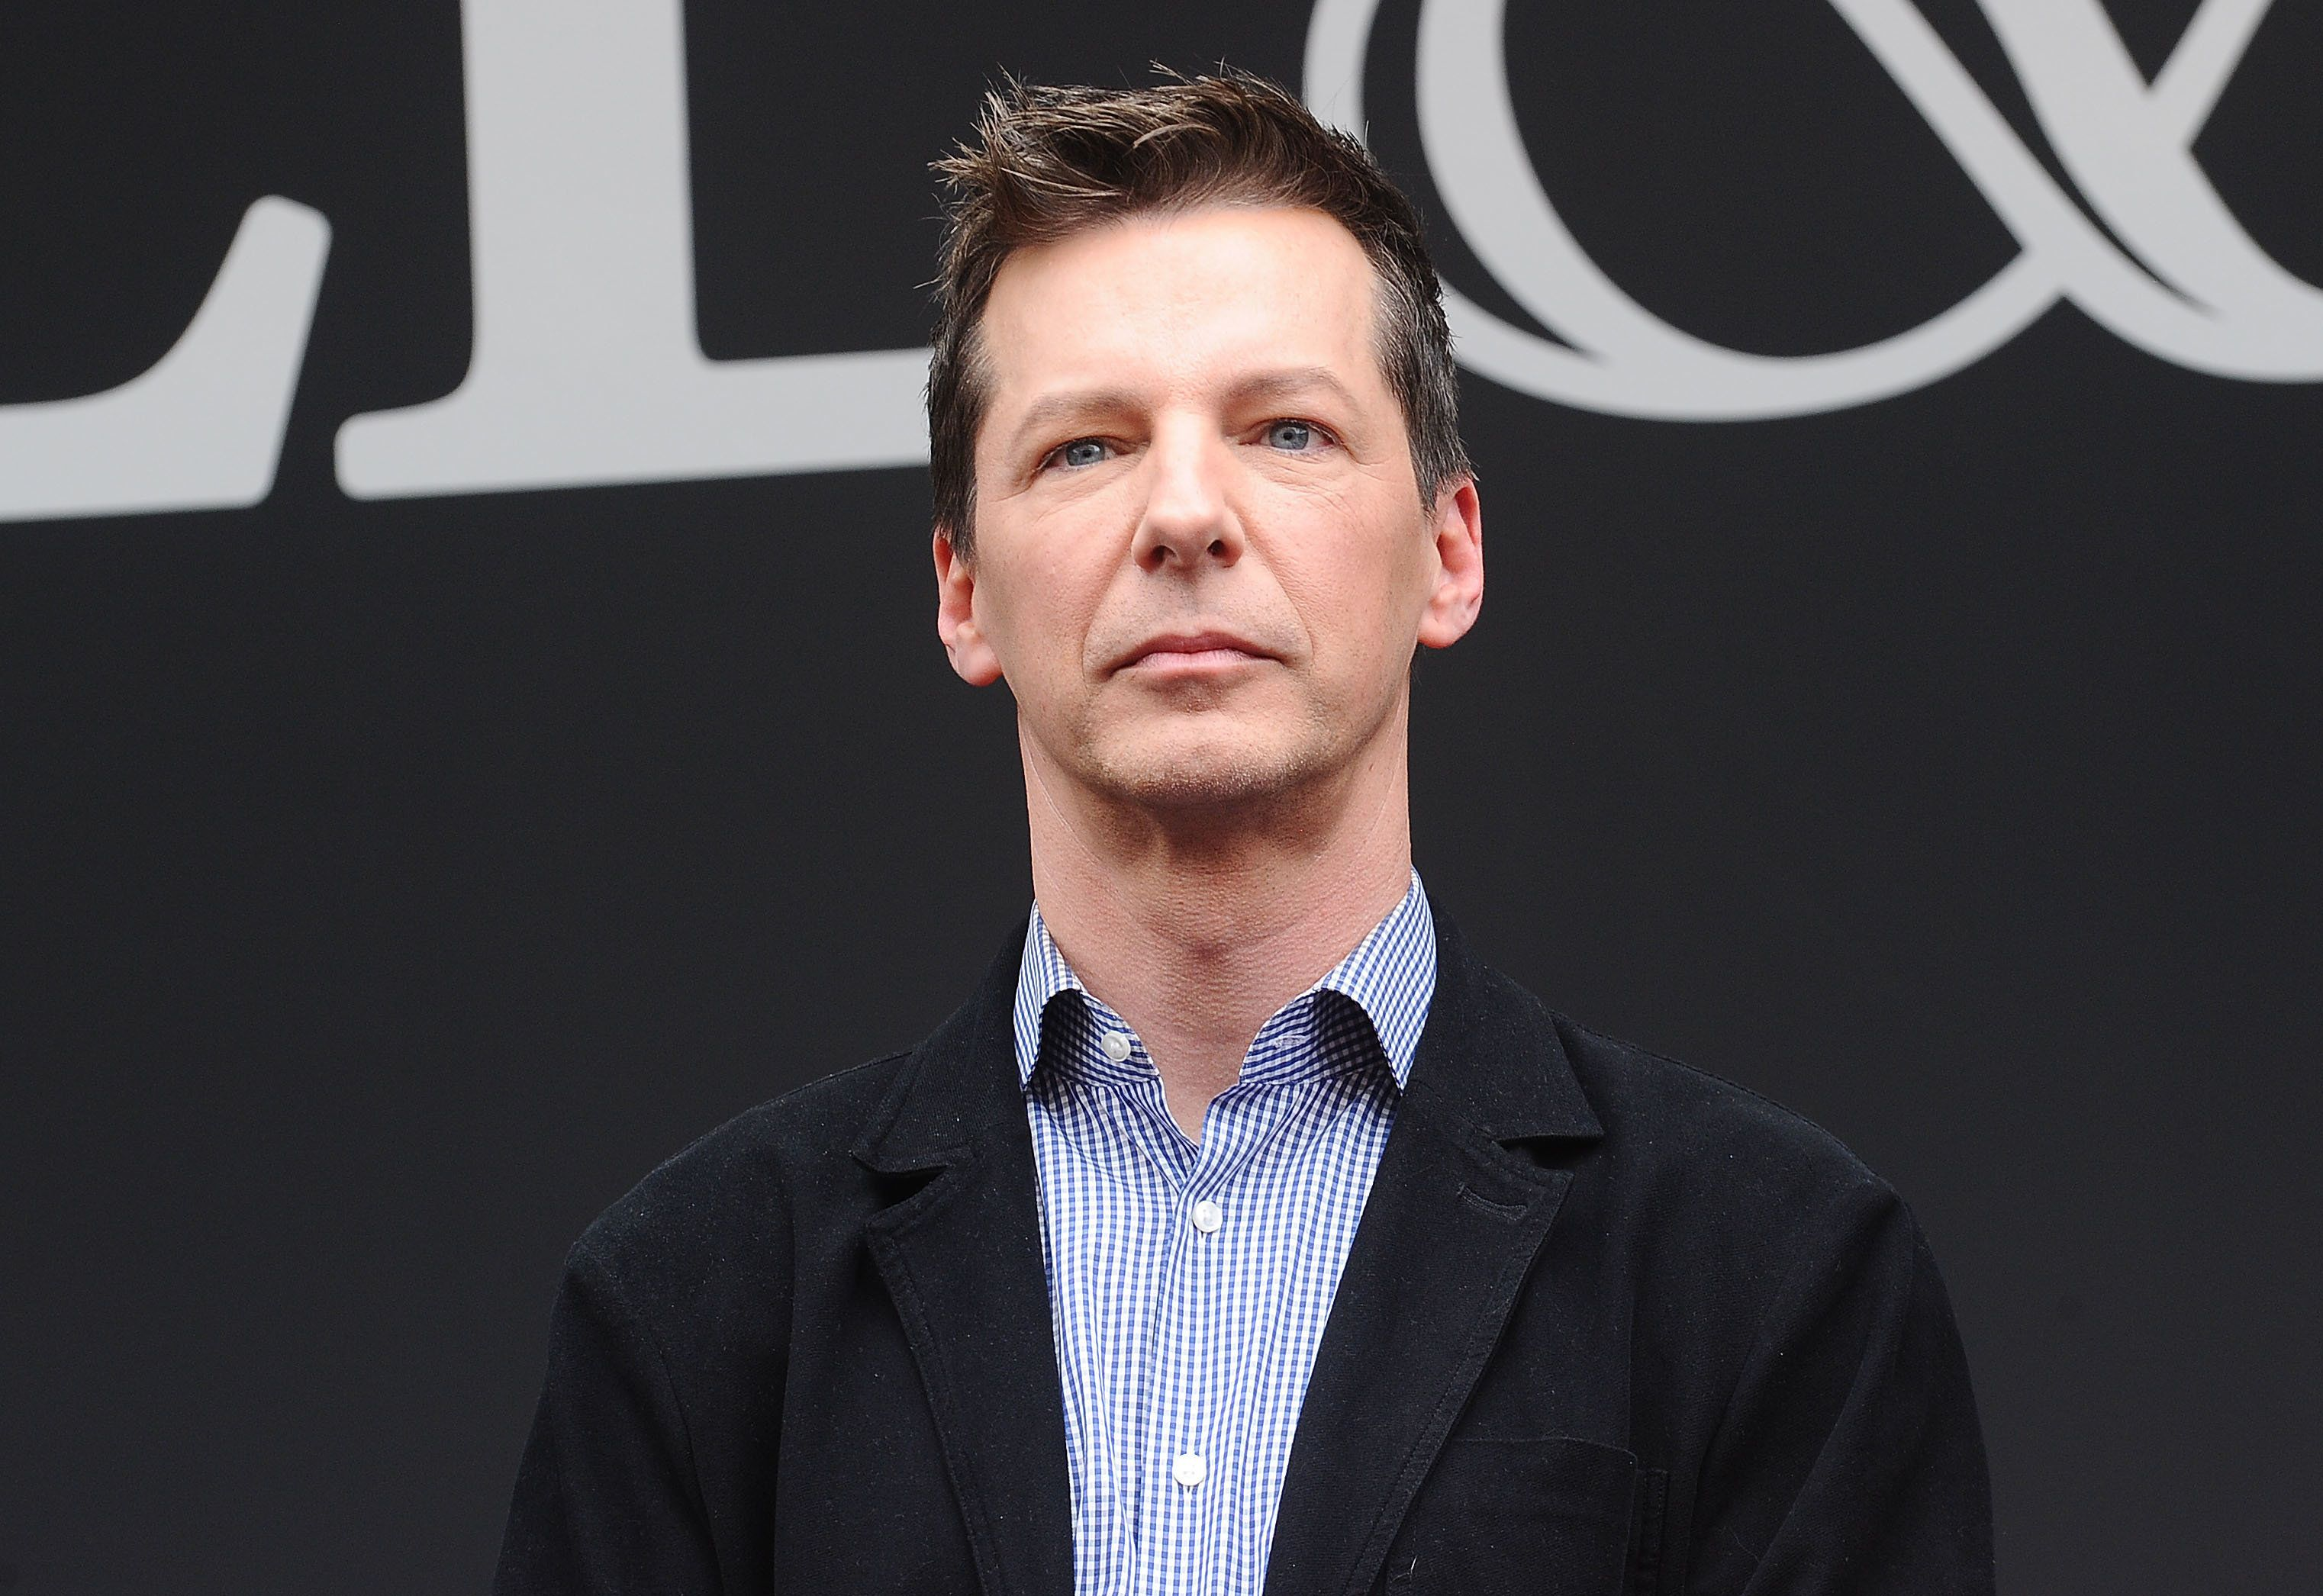 UNIVERSAL CITY, CA - AUGUST 02:  Actor Sean Hayes attends the 'Will & Grace' start of production kick off event and ribbon cutting ceremony at Universal City Plaza on August 2, 2017 in Universal City, California.  (Photo by Jason LaVeris/FilmMagic)